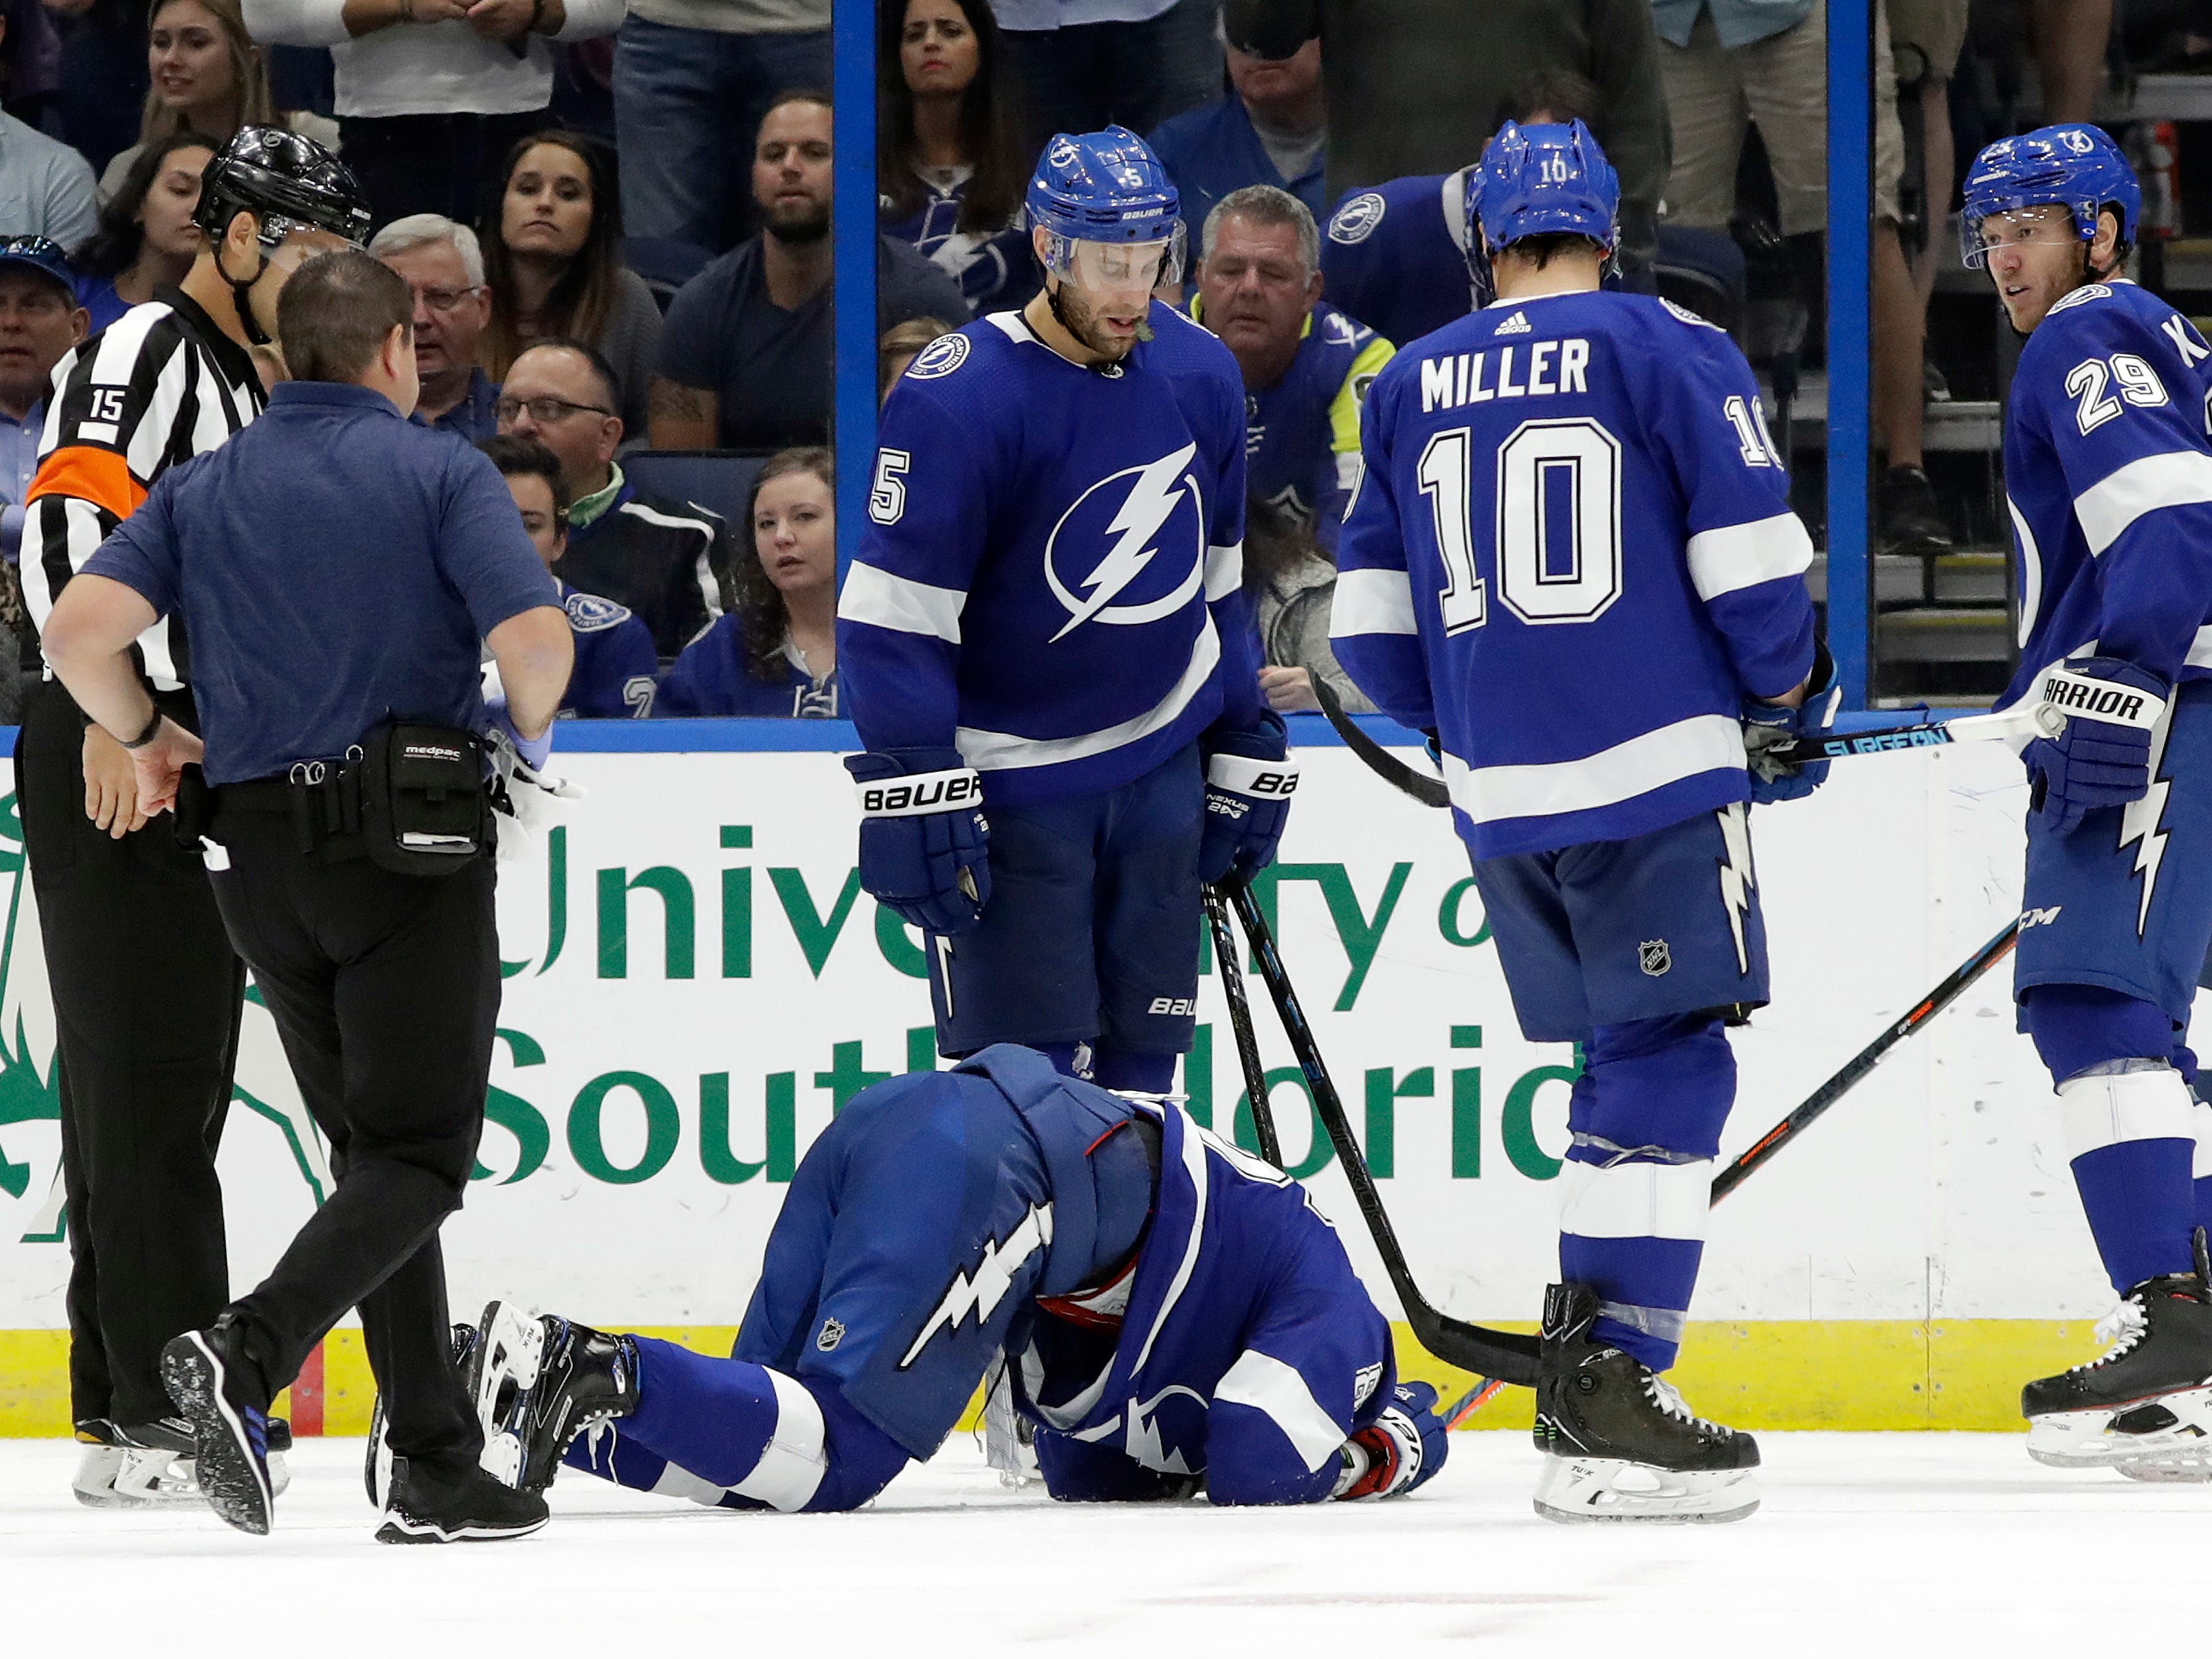 Oct. 30: Tampa Bay Lightning right wing Nikita Kucherov lies on the ice after blocking a New Jersey Devils shot during the second period. He later returns and scores his second goal of the game.